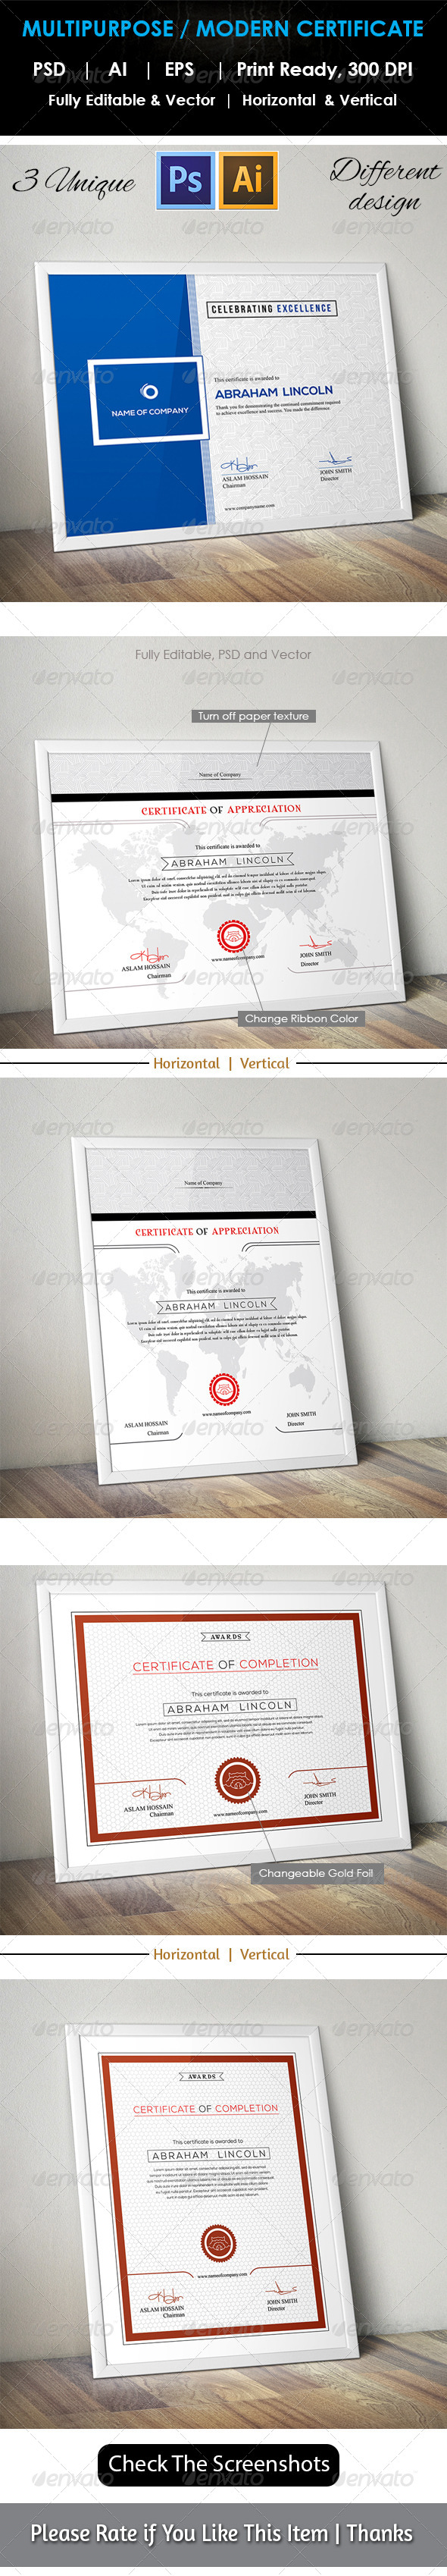 GraphicRiver 3 Design Multipurpose Certificate GD009 7949973